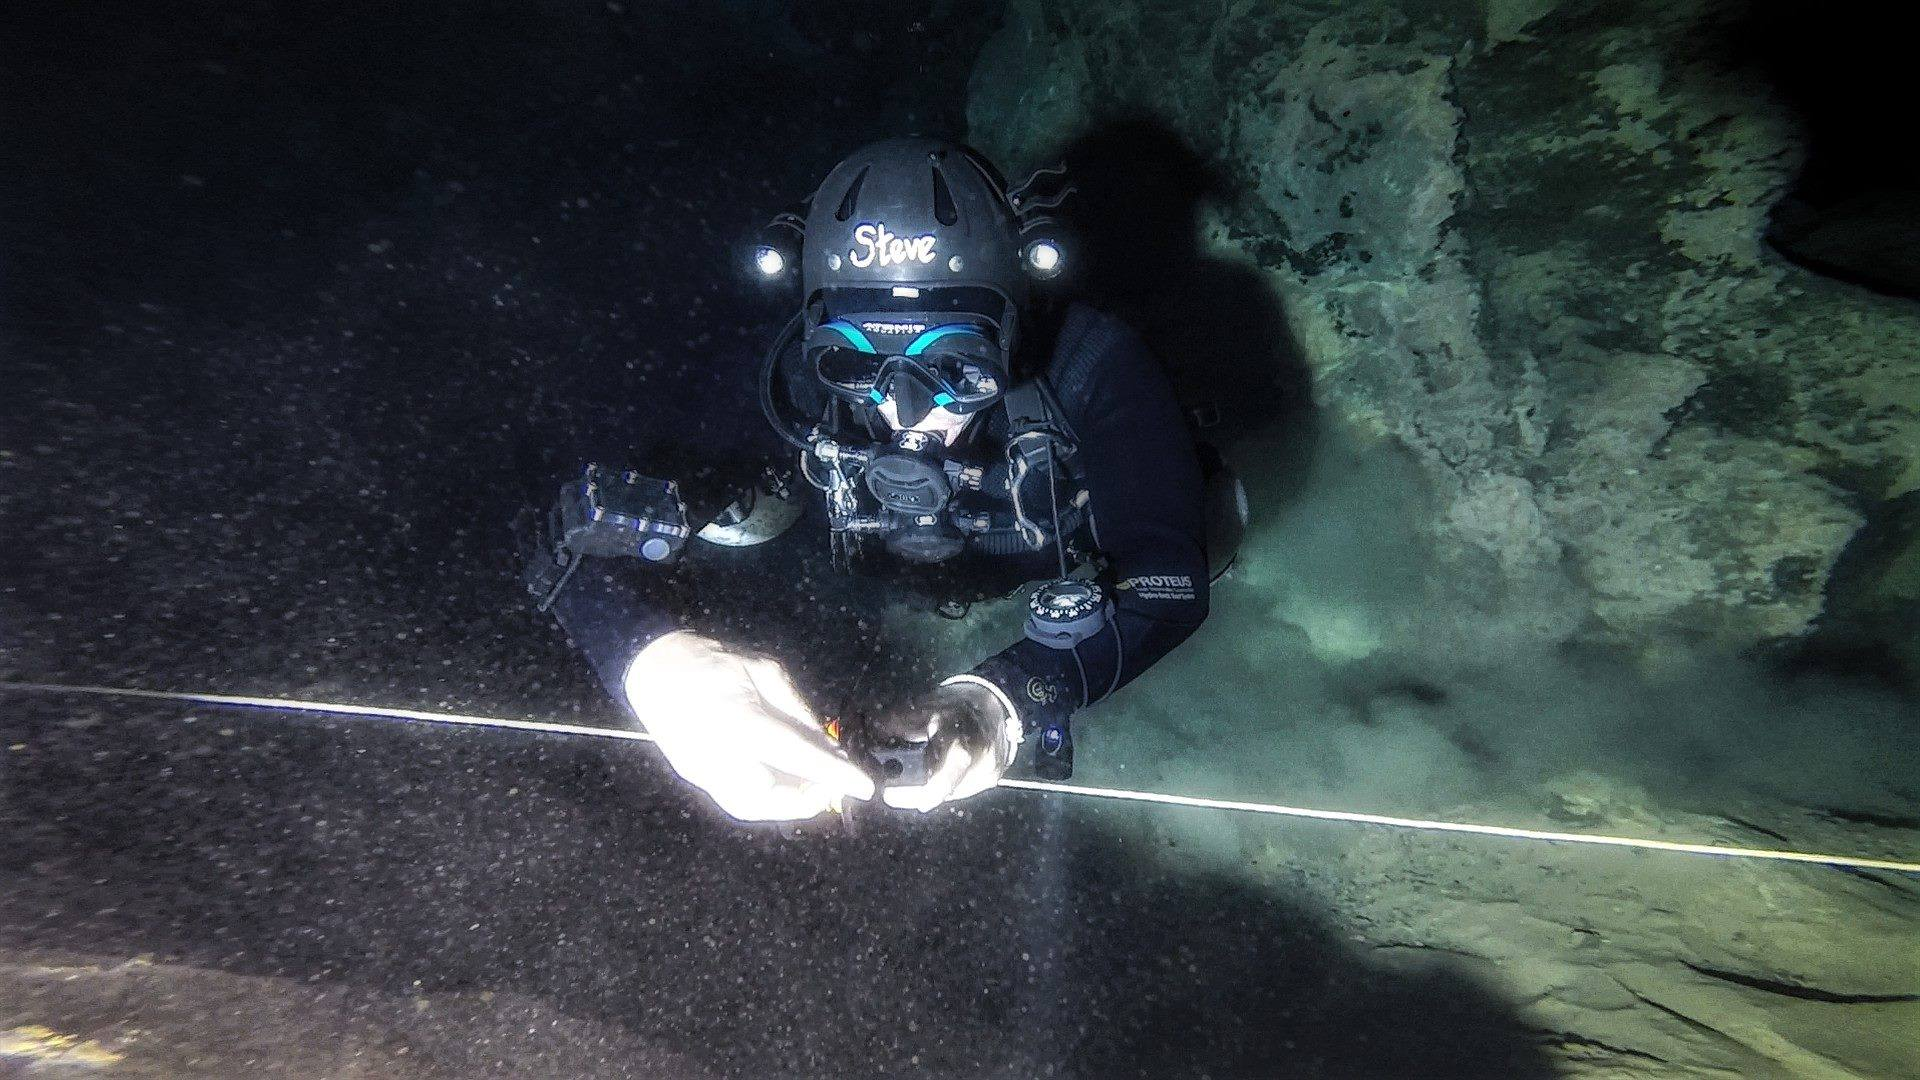 The Author laying a line while cave diving -Cueva Del Agua, Spain. Photo credit  Tom Steiner